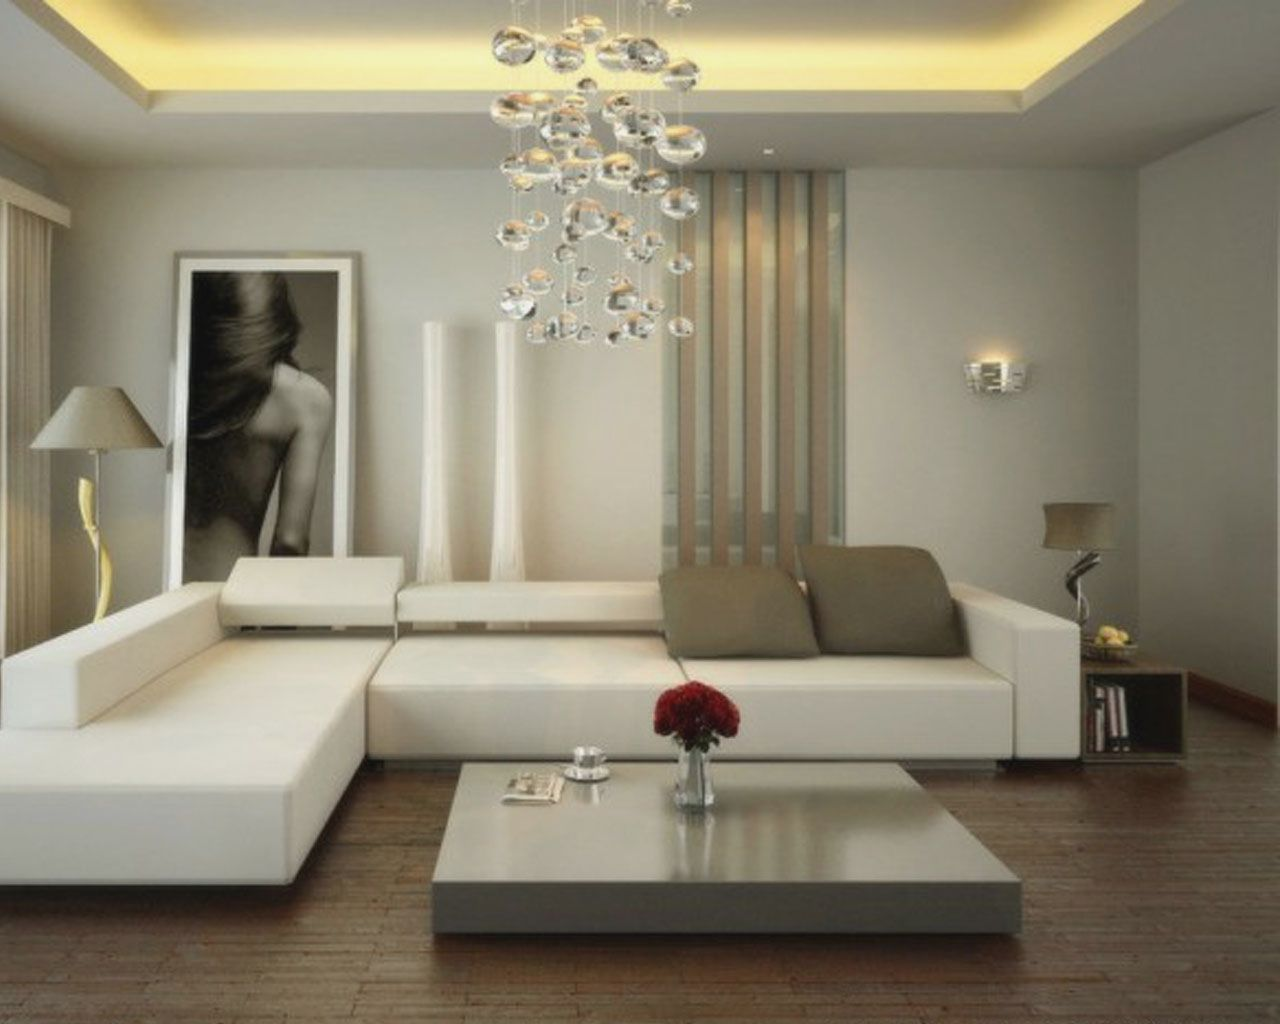 Simple interior design living room indian style more for Living room designs indian style